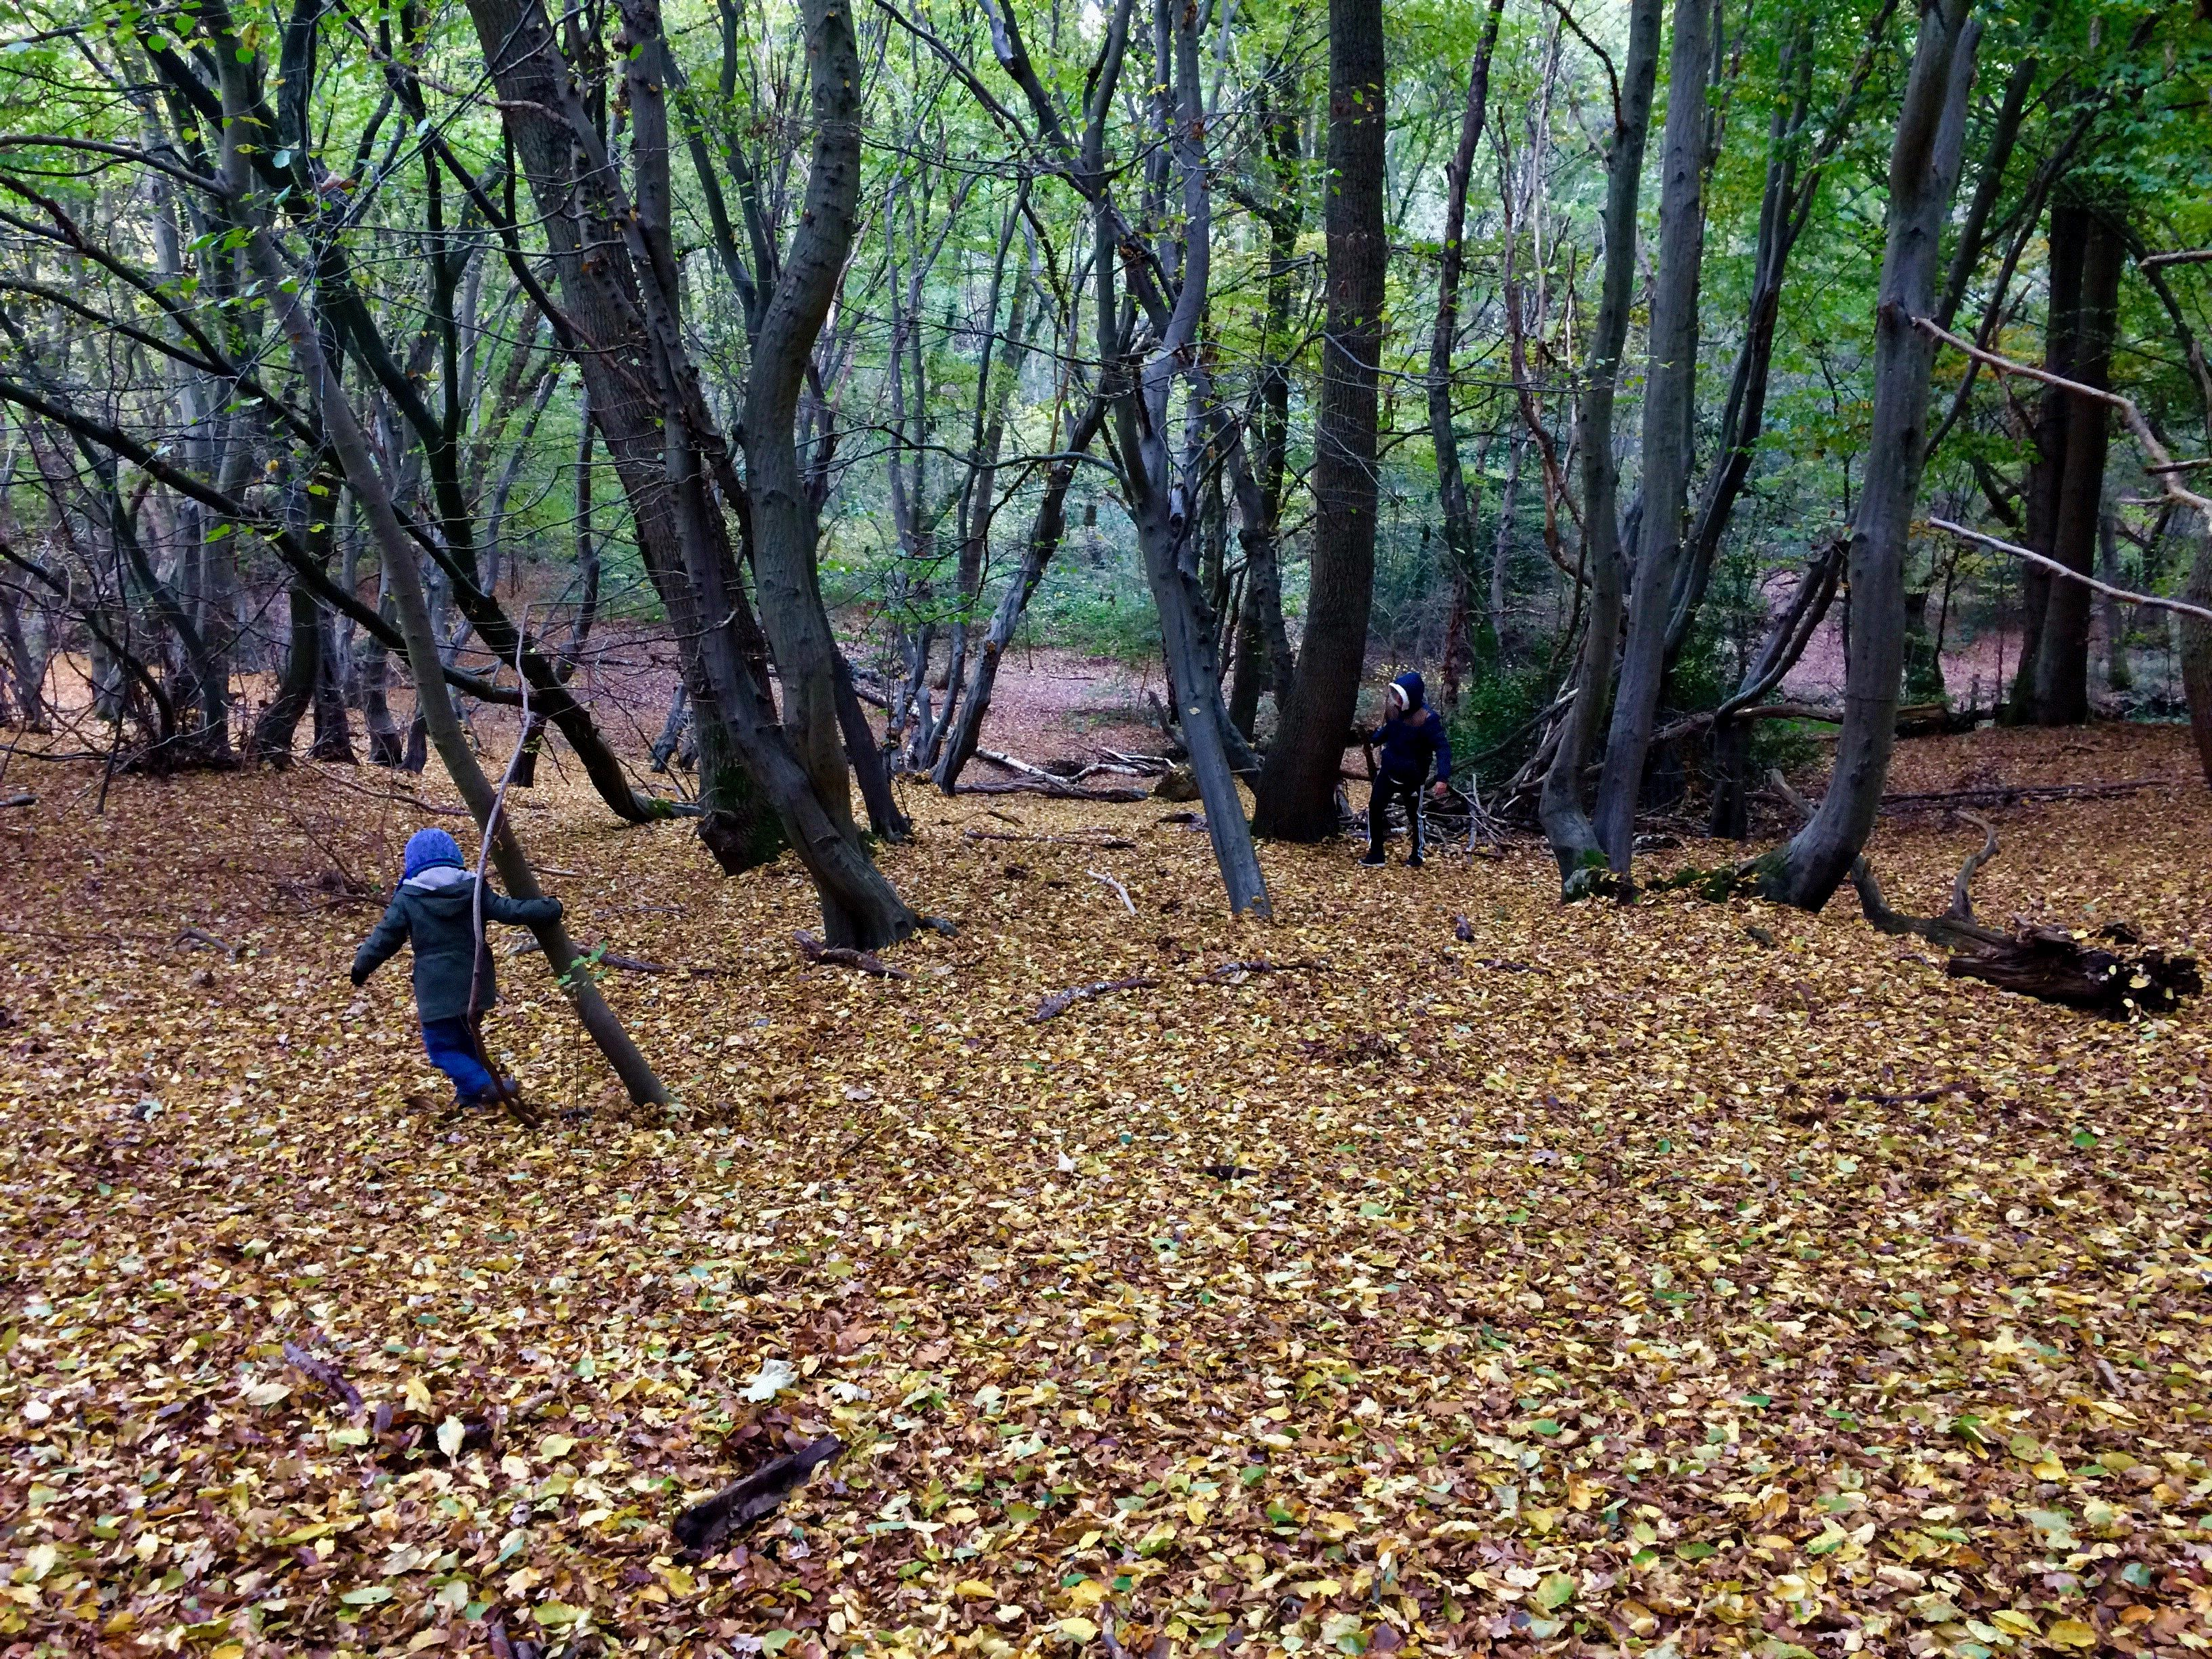 Small child playing in a woodland carpeted with fallen leaves